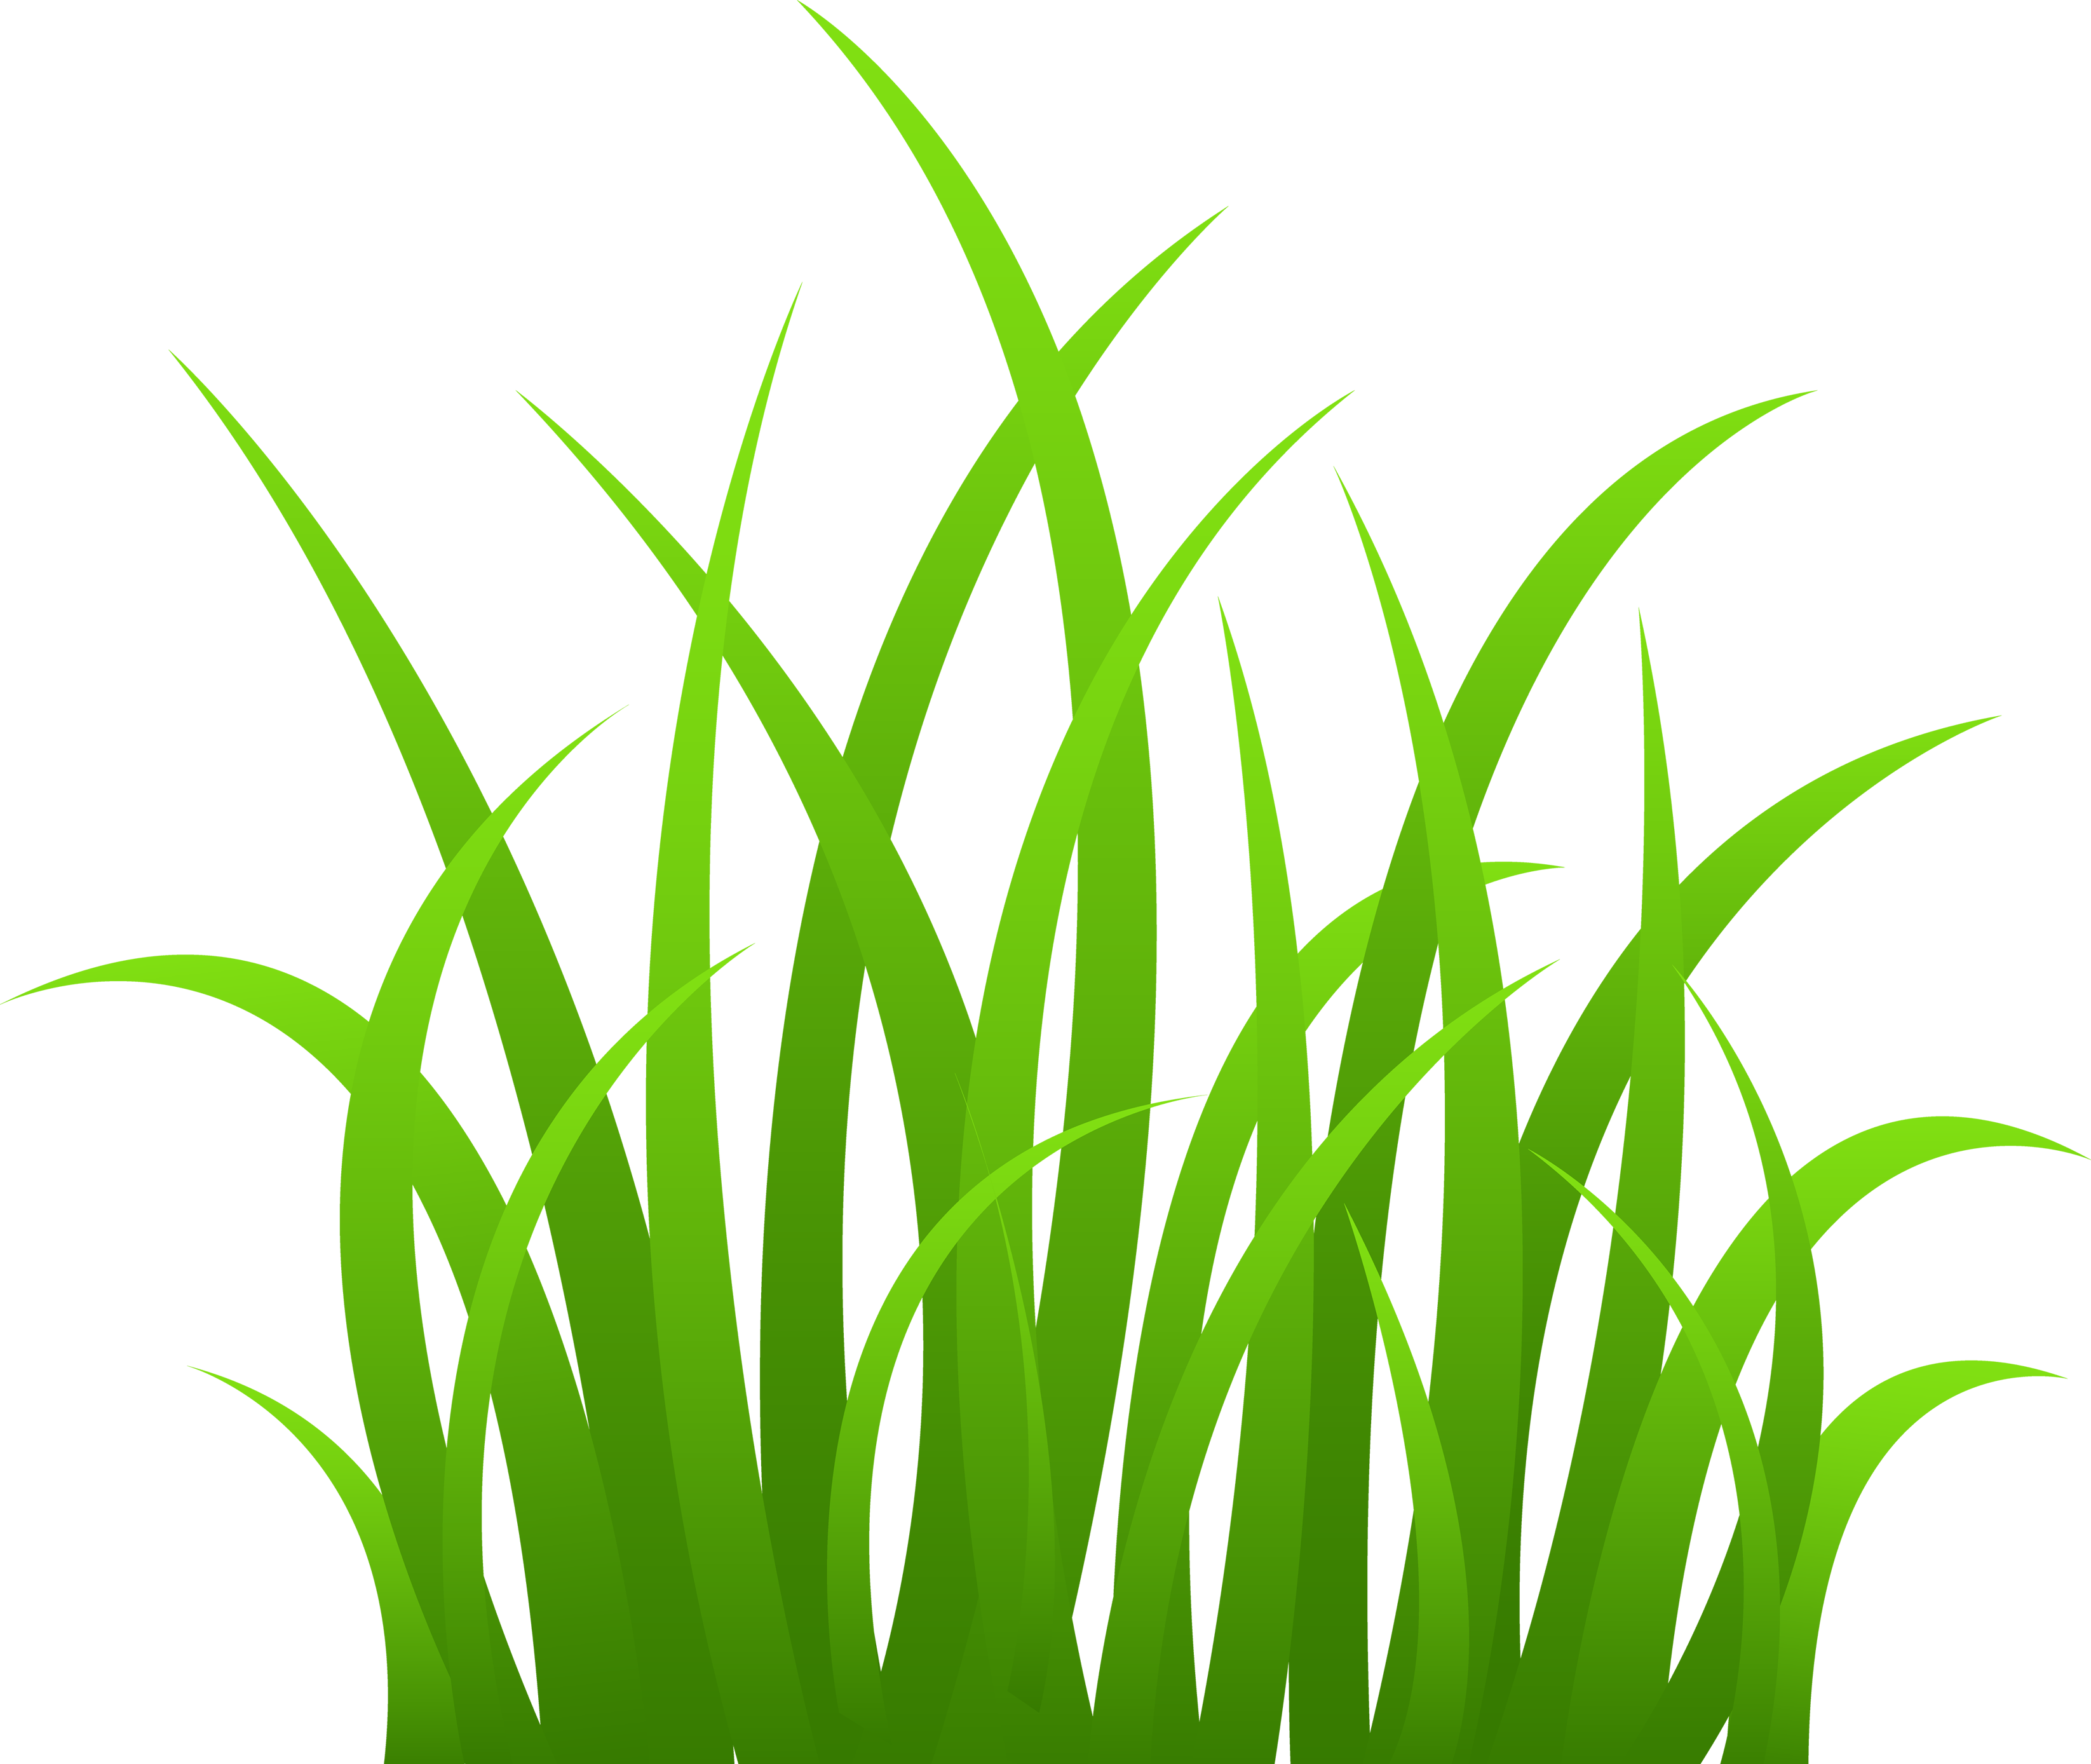 Grass vector png. Images pictures image green